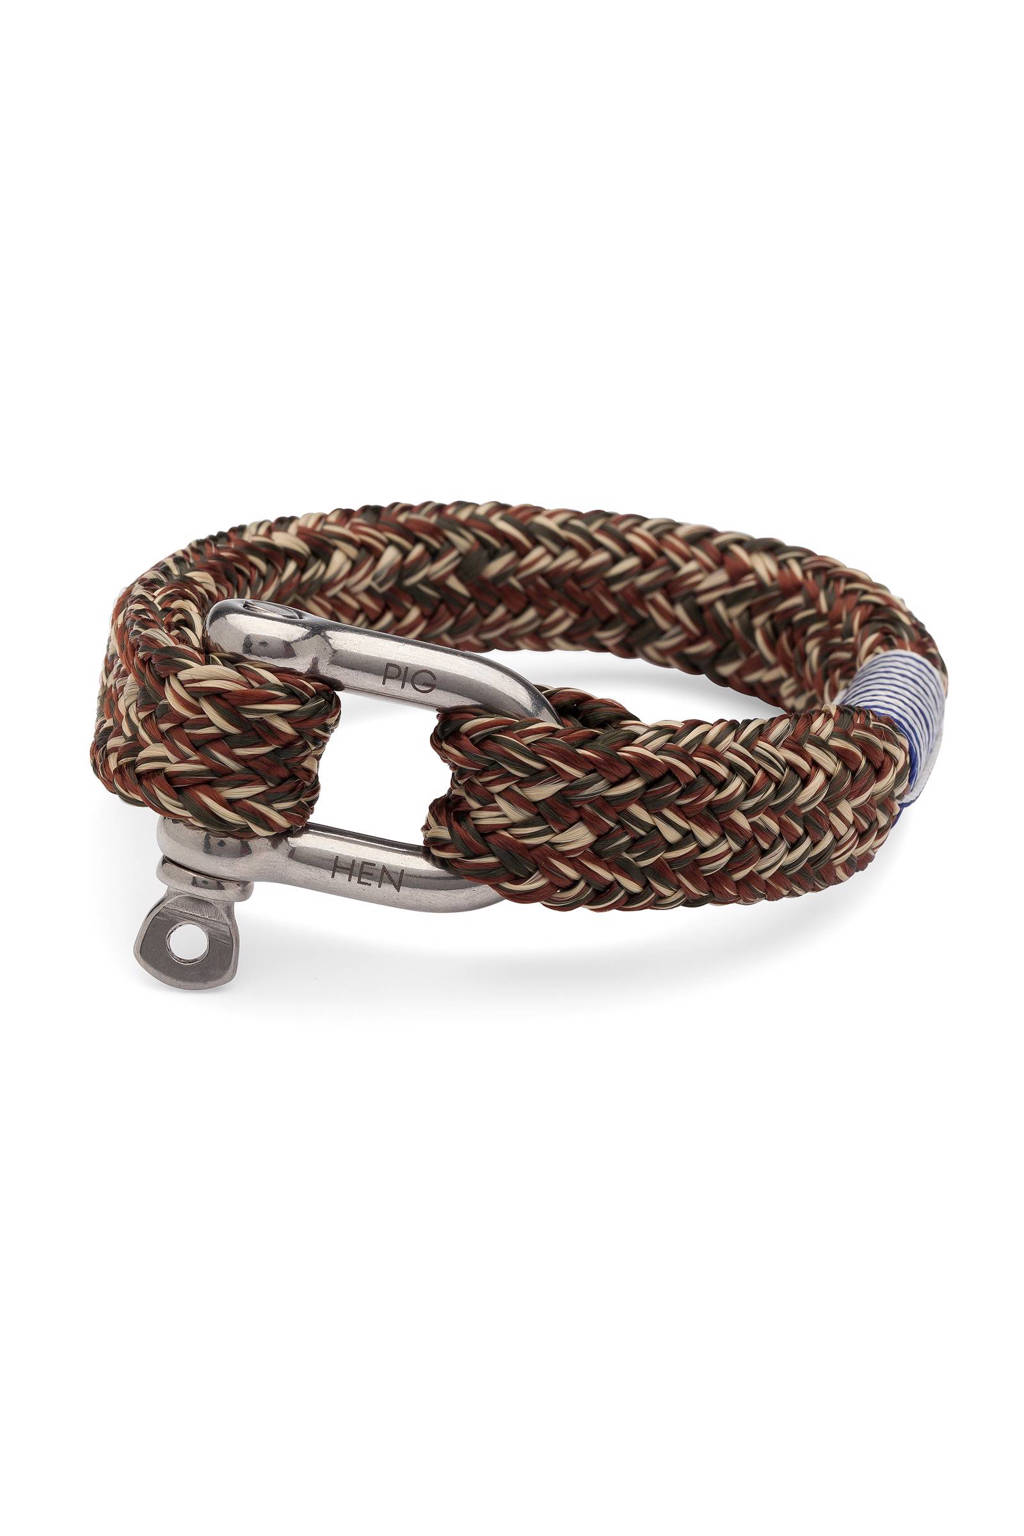 Pig & Hen armband Fat Fred, Army/brown/sand